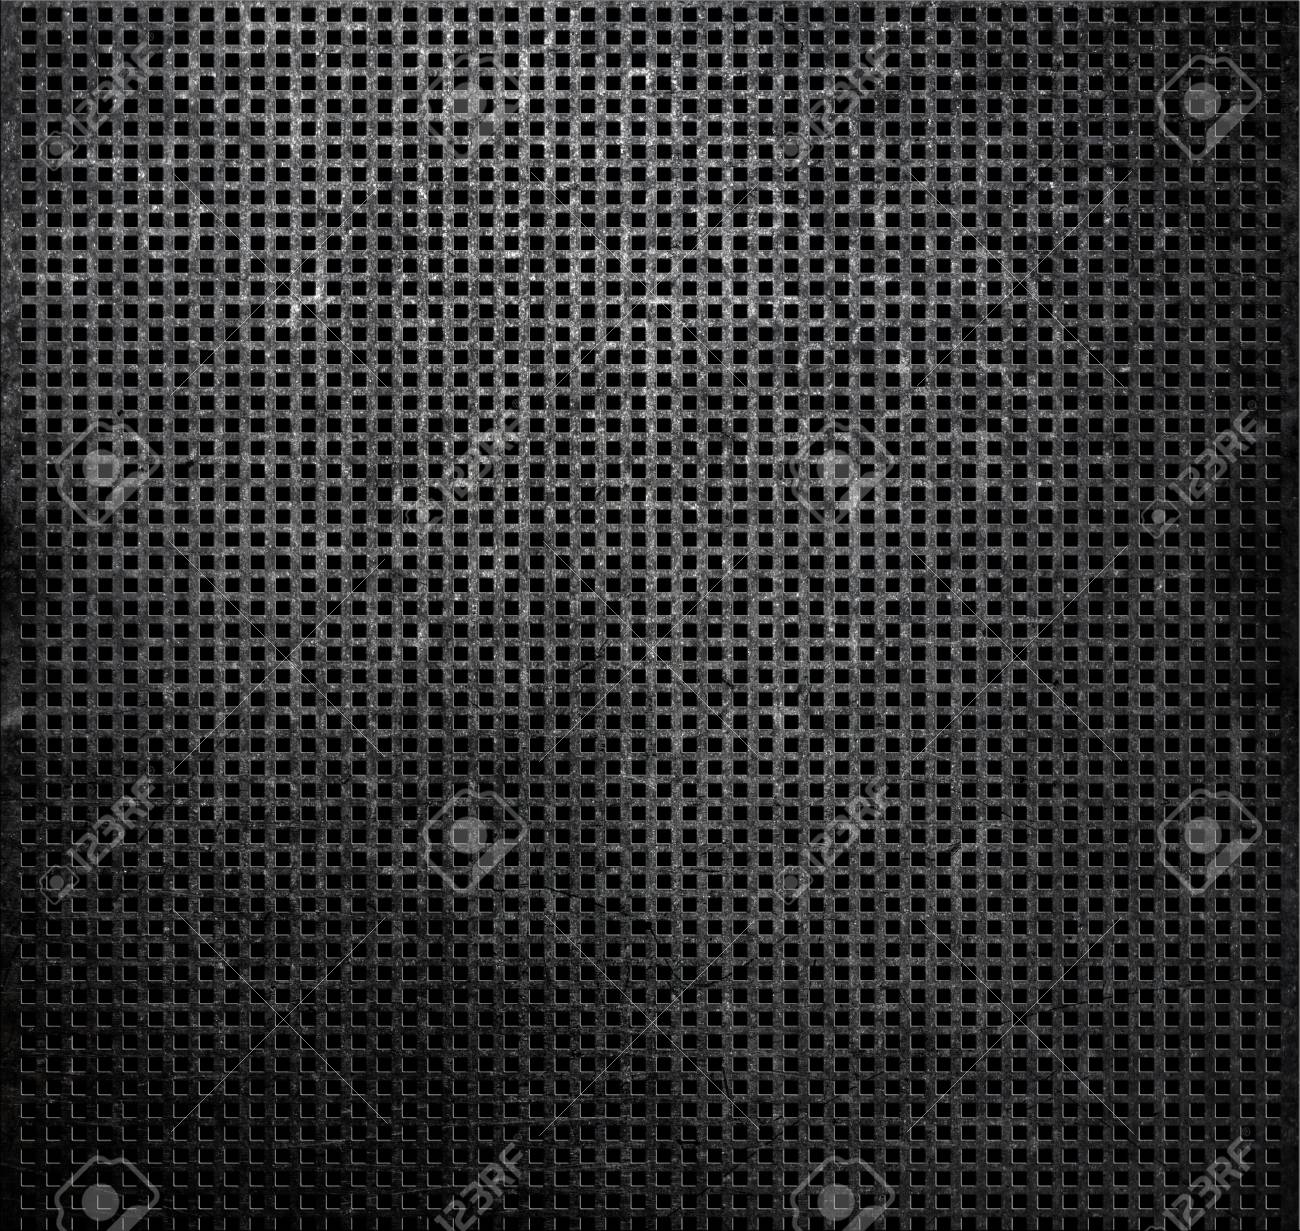 chipped paint on rusty metal surface Stock Photo - 12951437